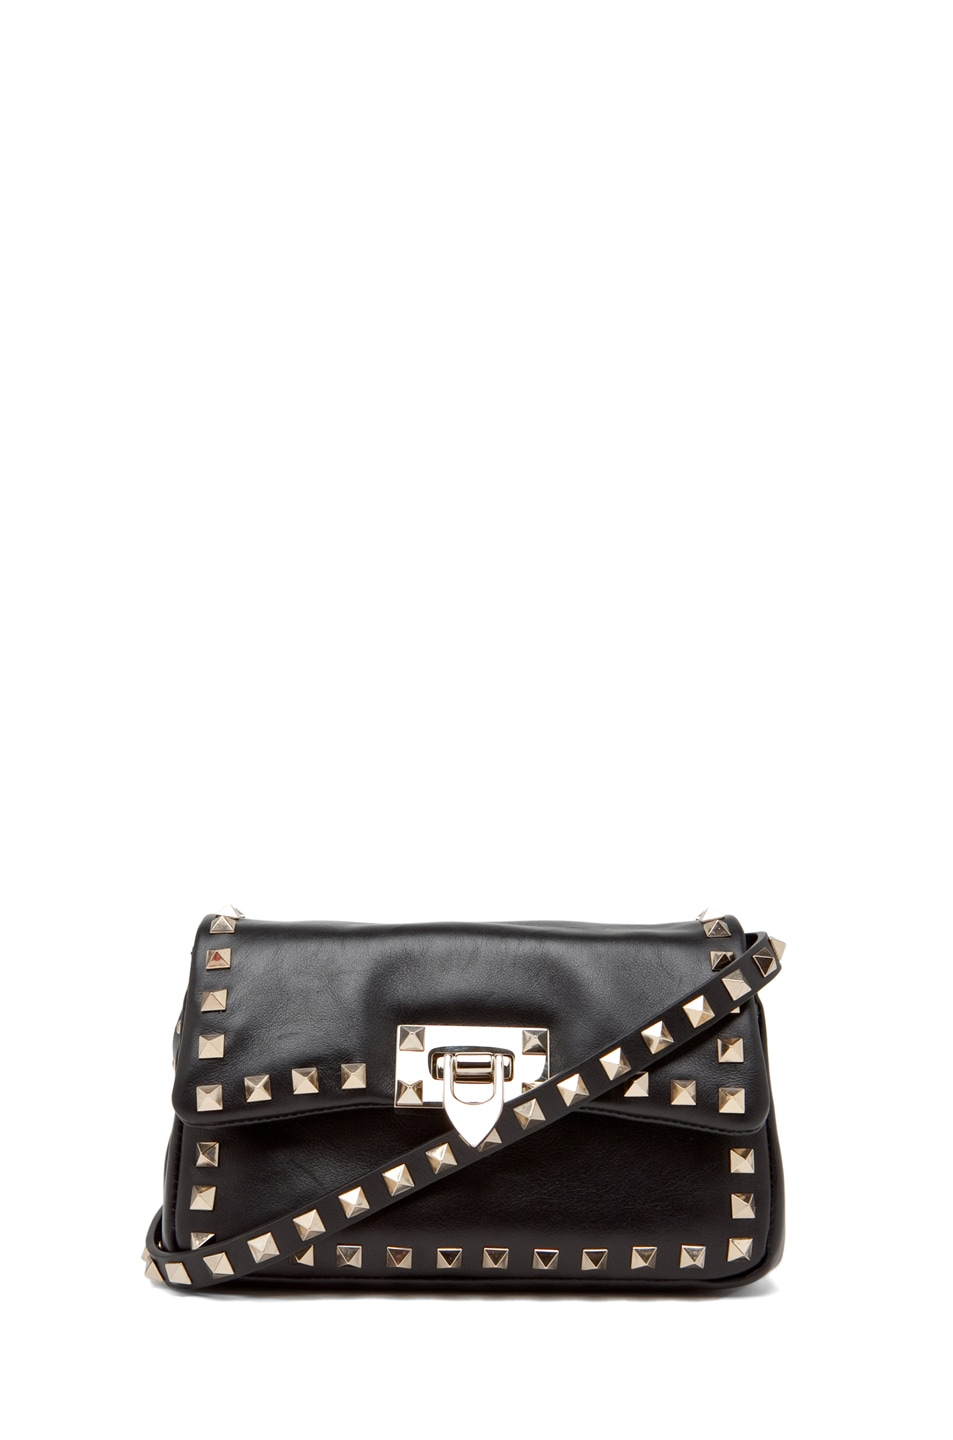 Image 1 of Valentino Rockstud Flap Bag in Black